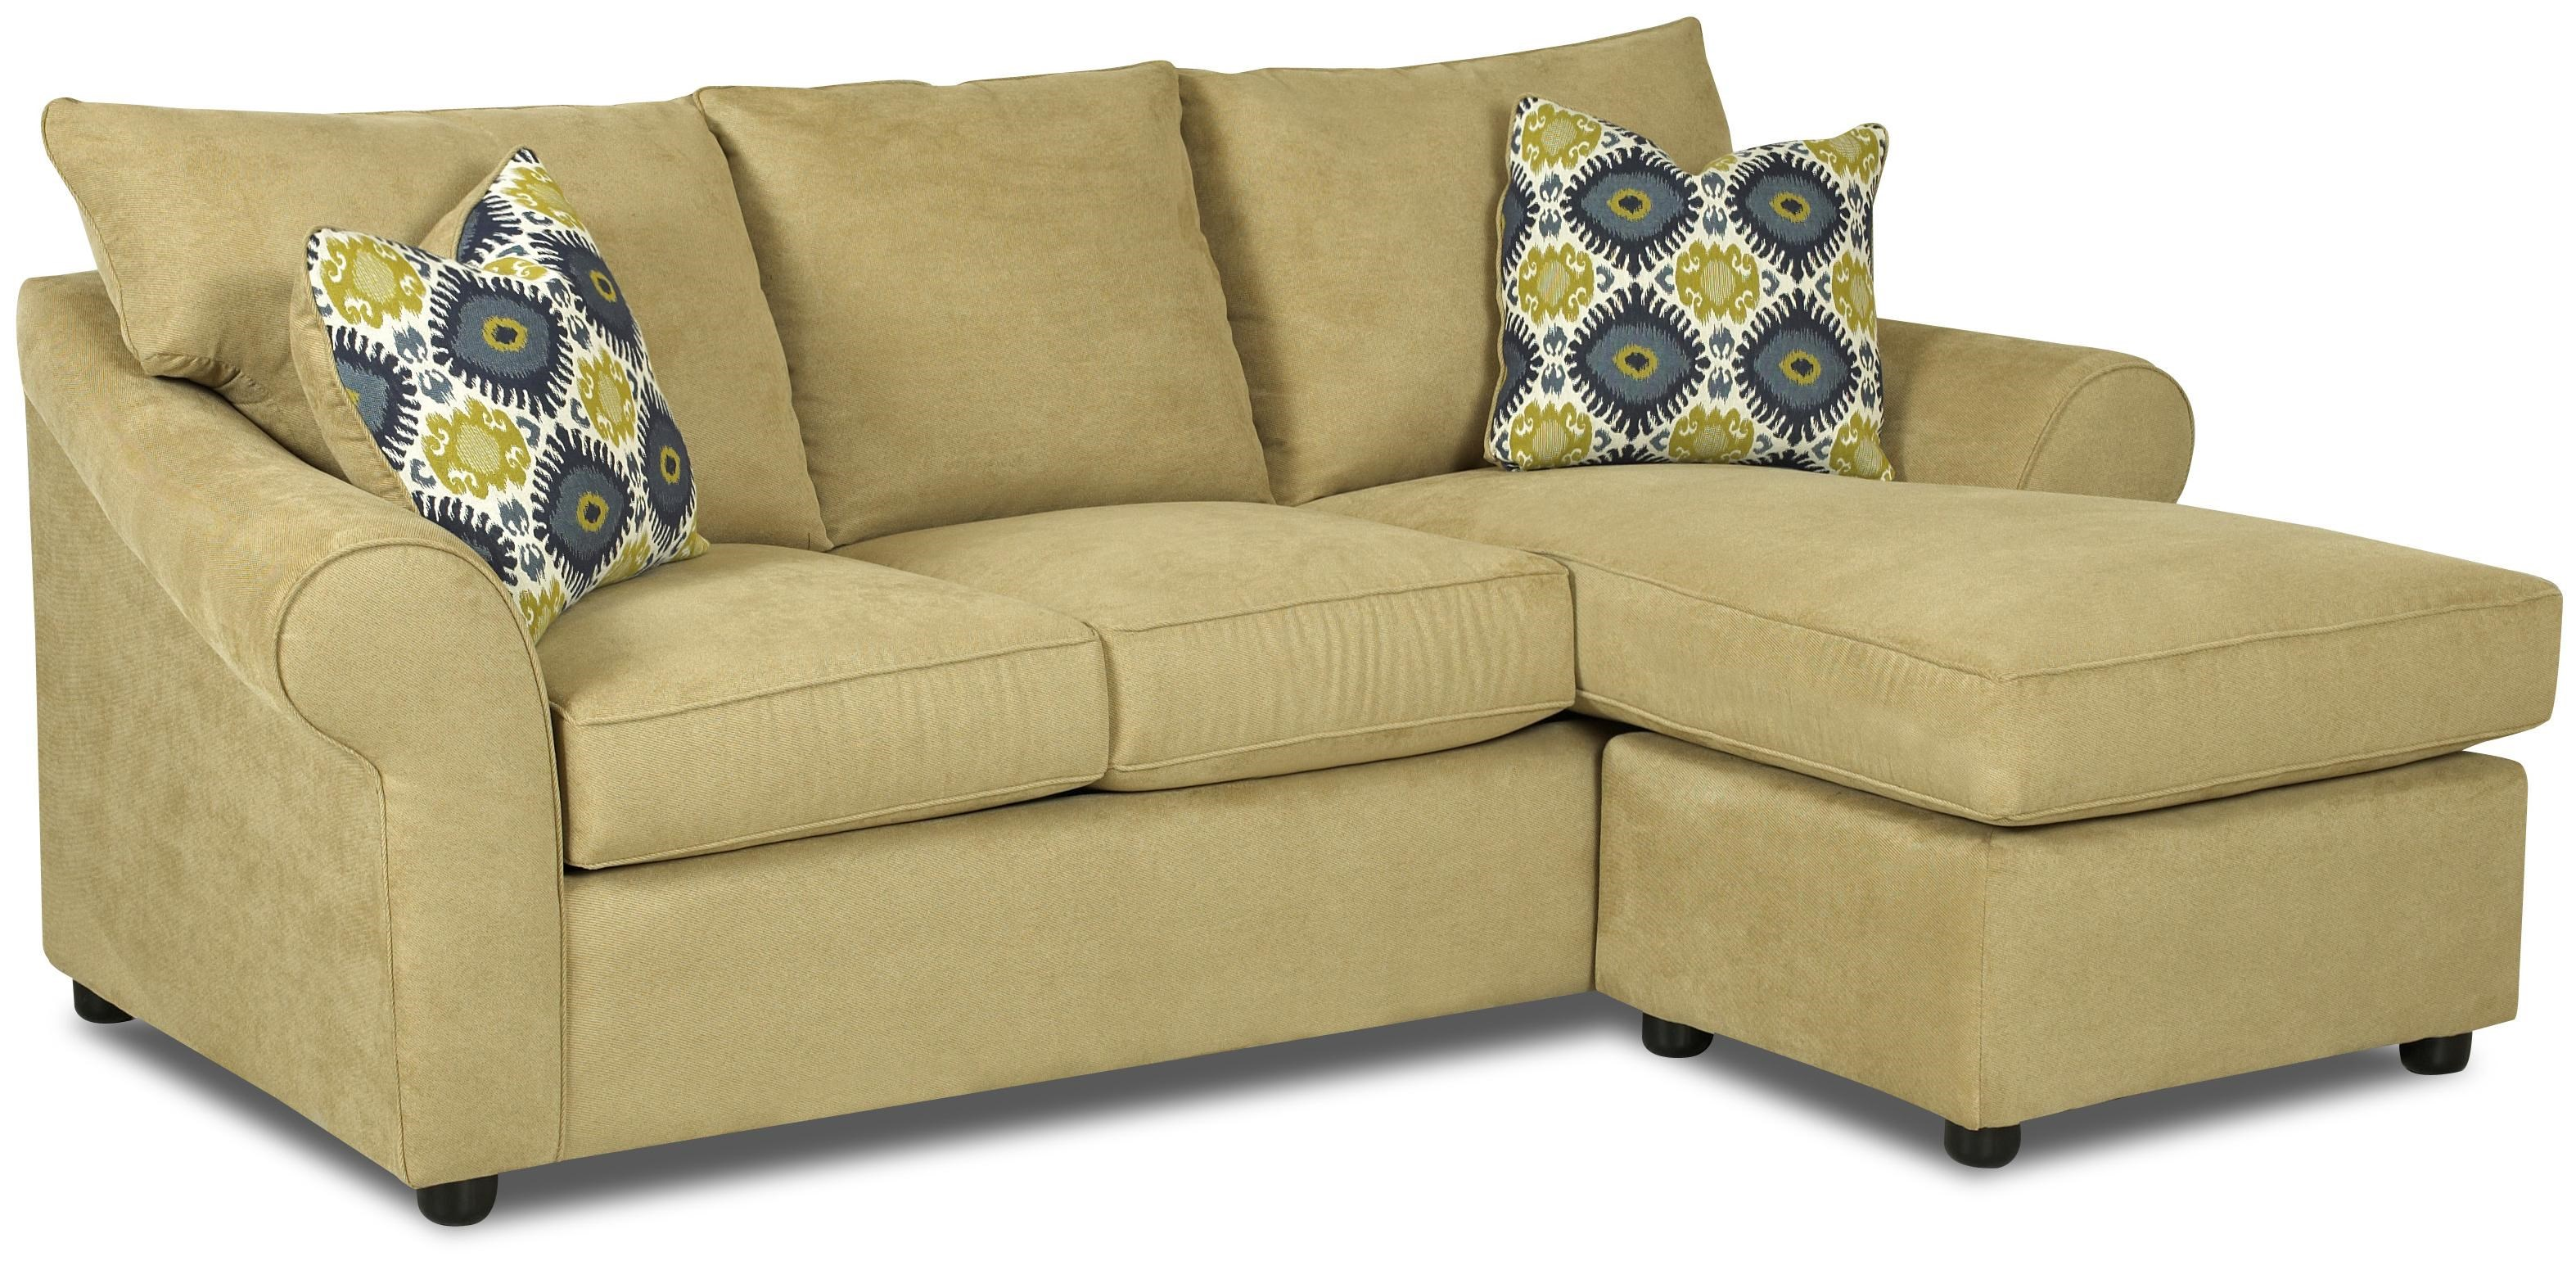 Klaussner Folio Sofa With Reversible Chaise Lounge